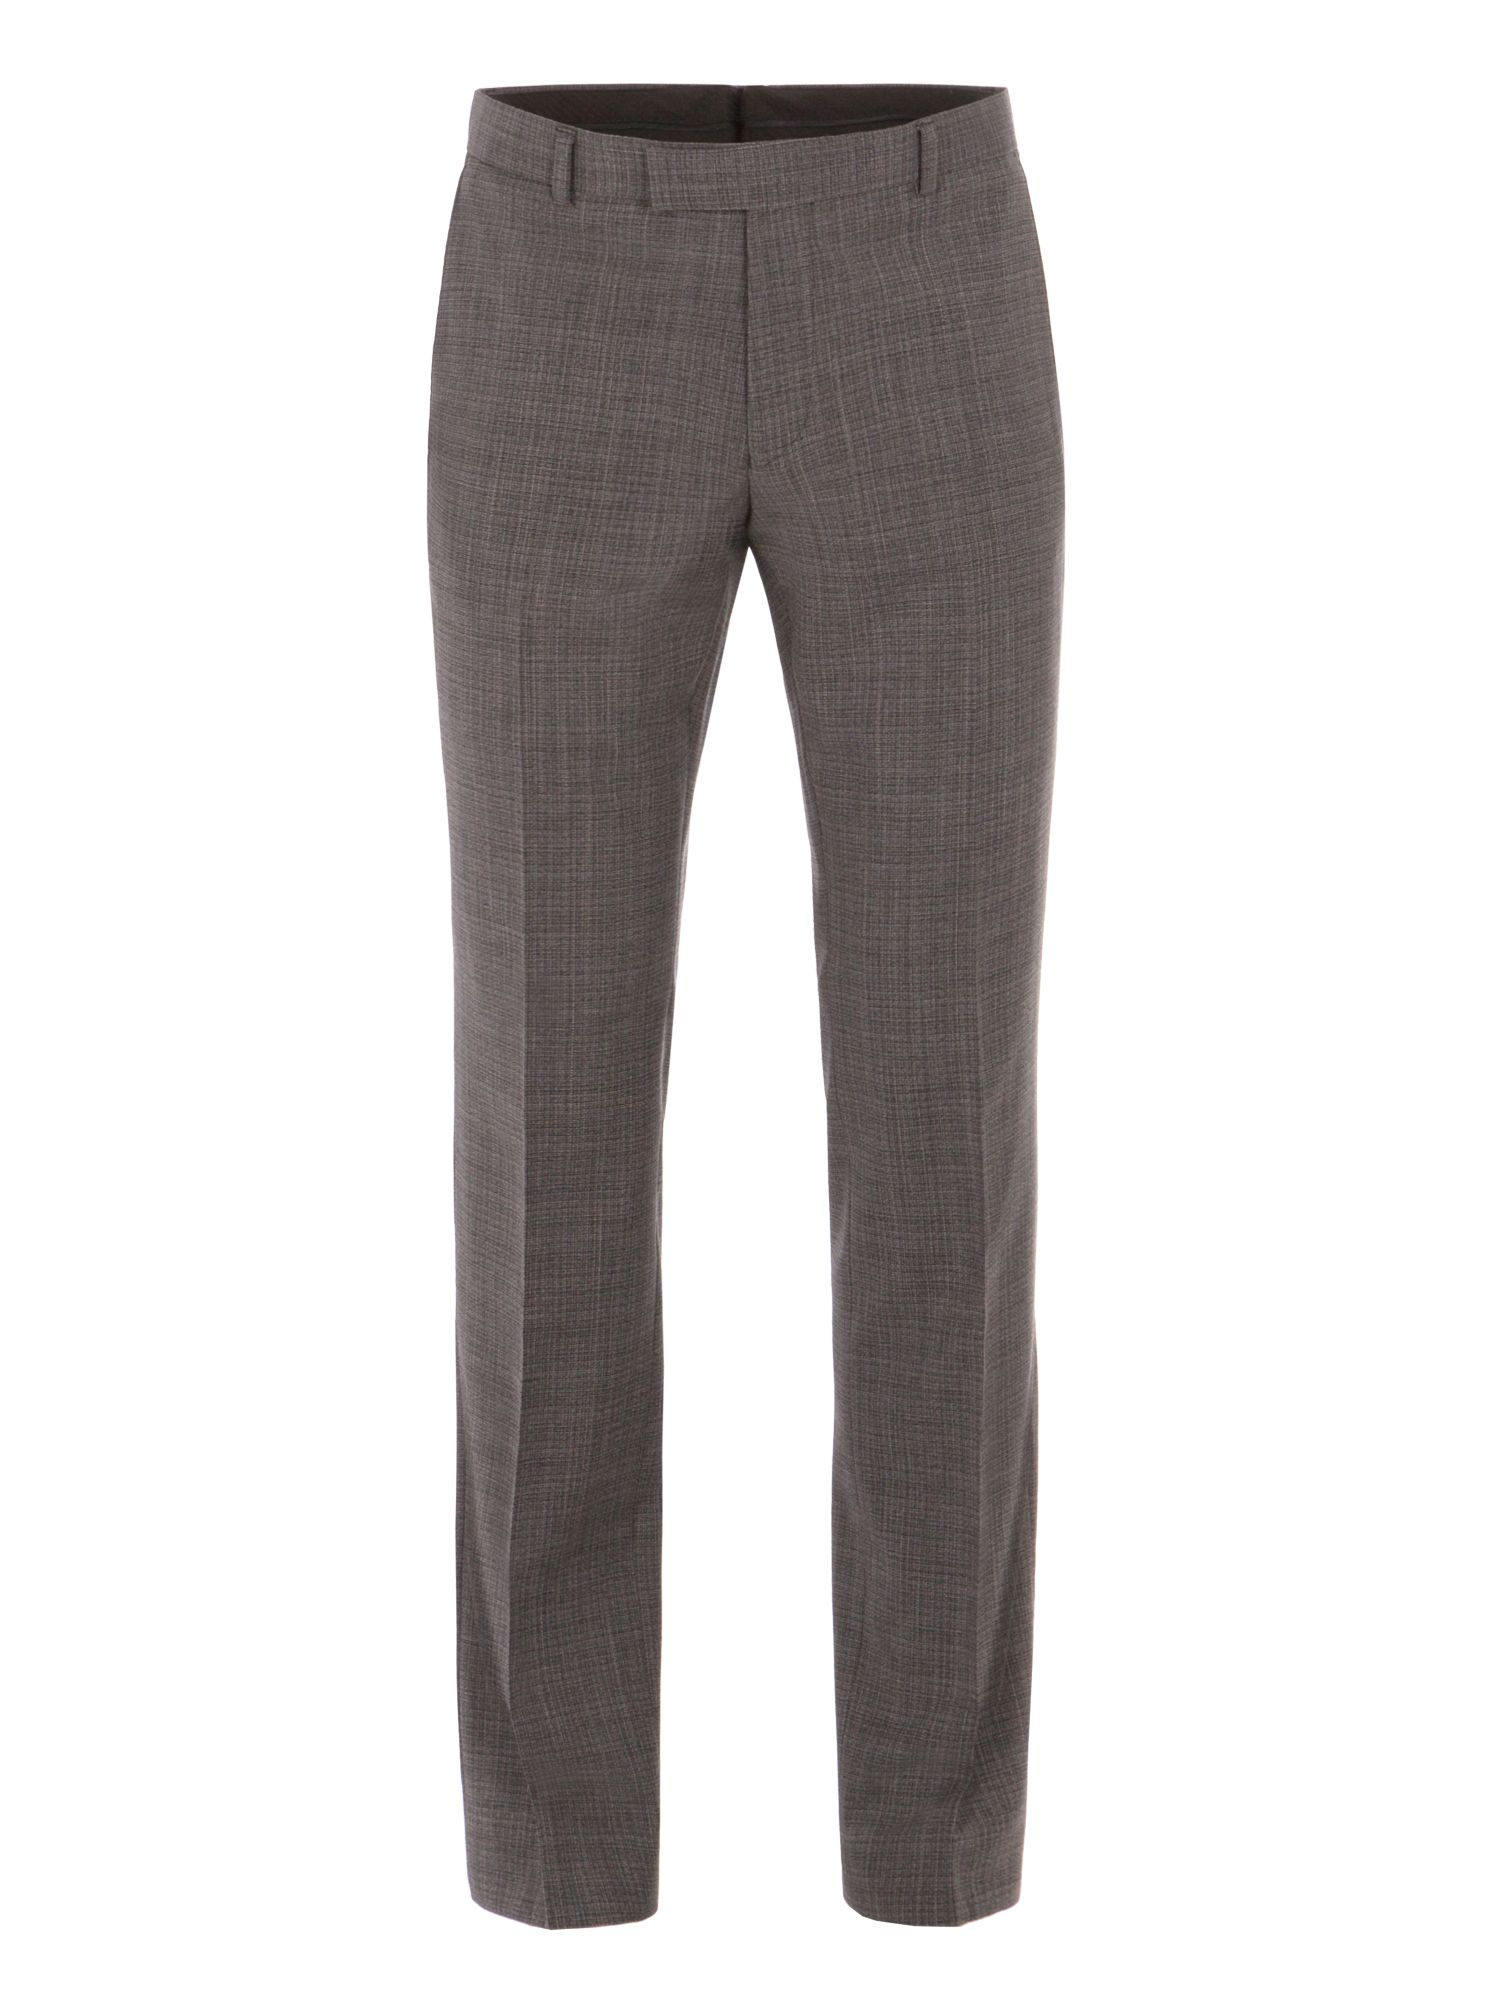 Alexandre of England Men's Alexandre of England Gracechurch Charcoal Jaspe Suit Trouser, Charcoal